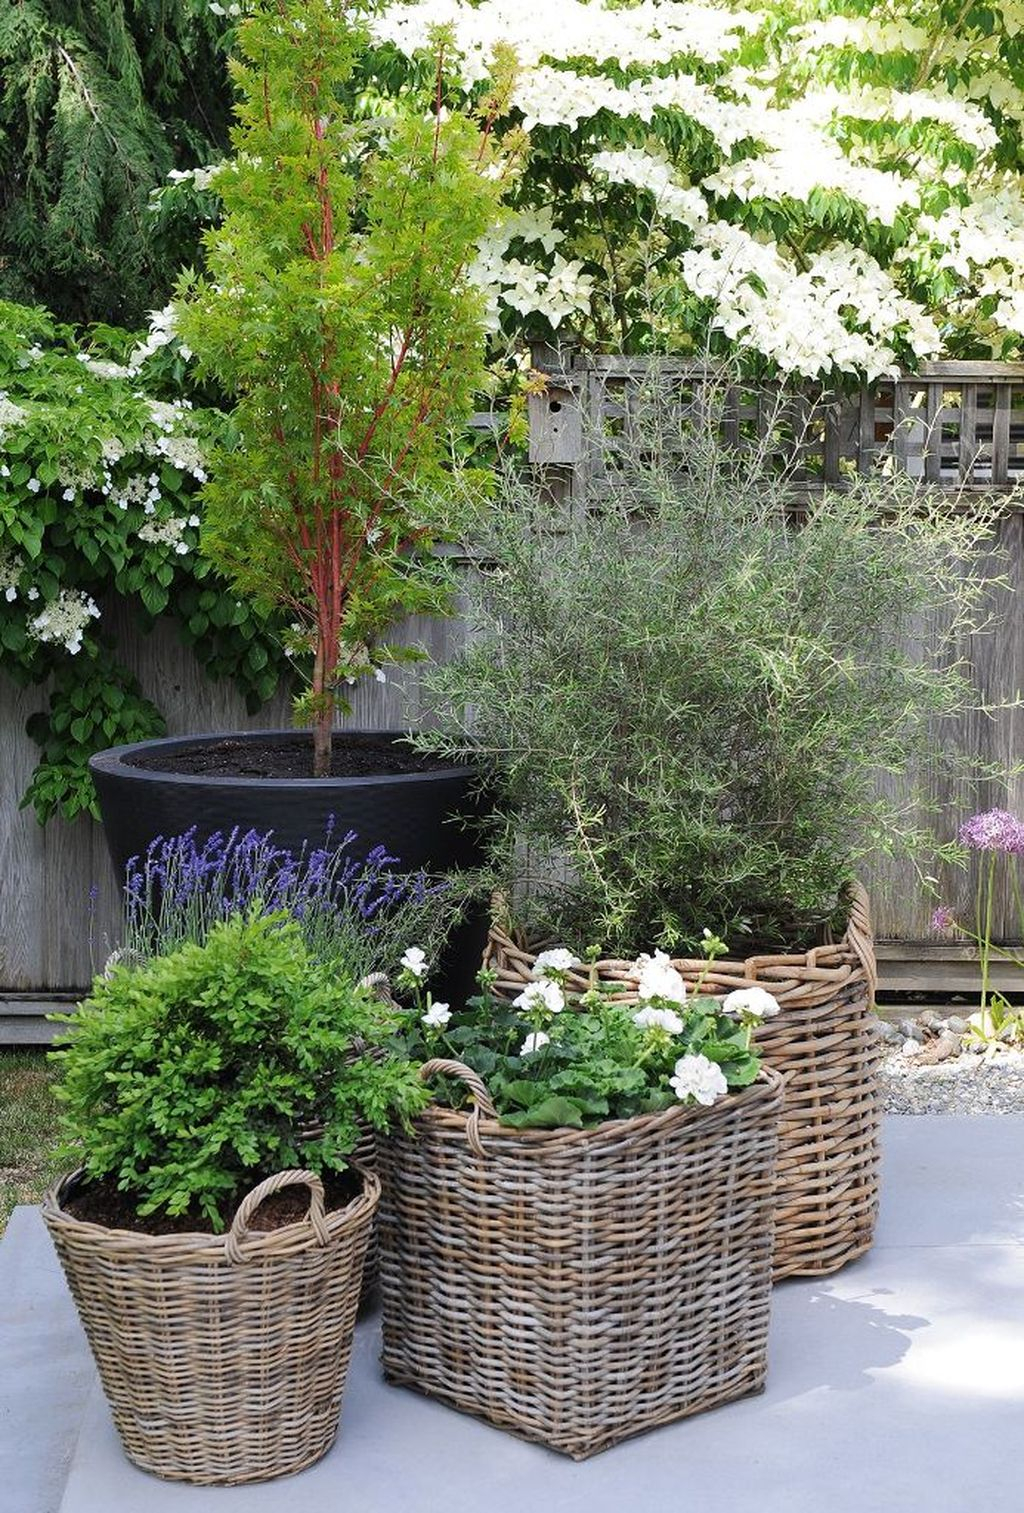 Captivating Diy Patio Gardens Ideas On A Budget To Try 01